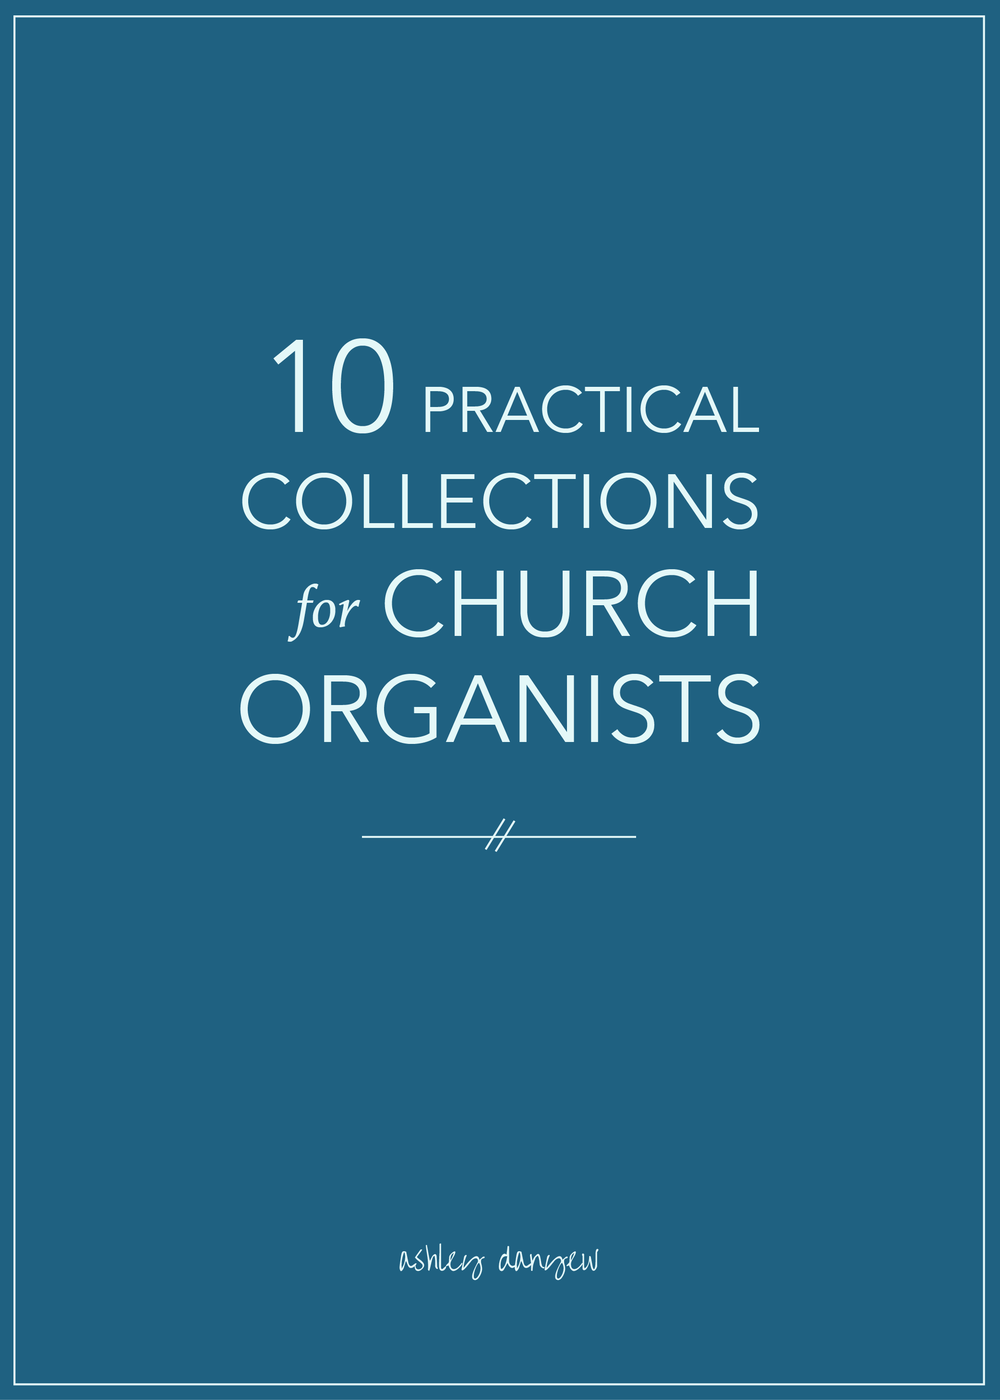 10-Practical-Collections-for-Church-Organists-01.png